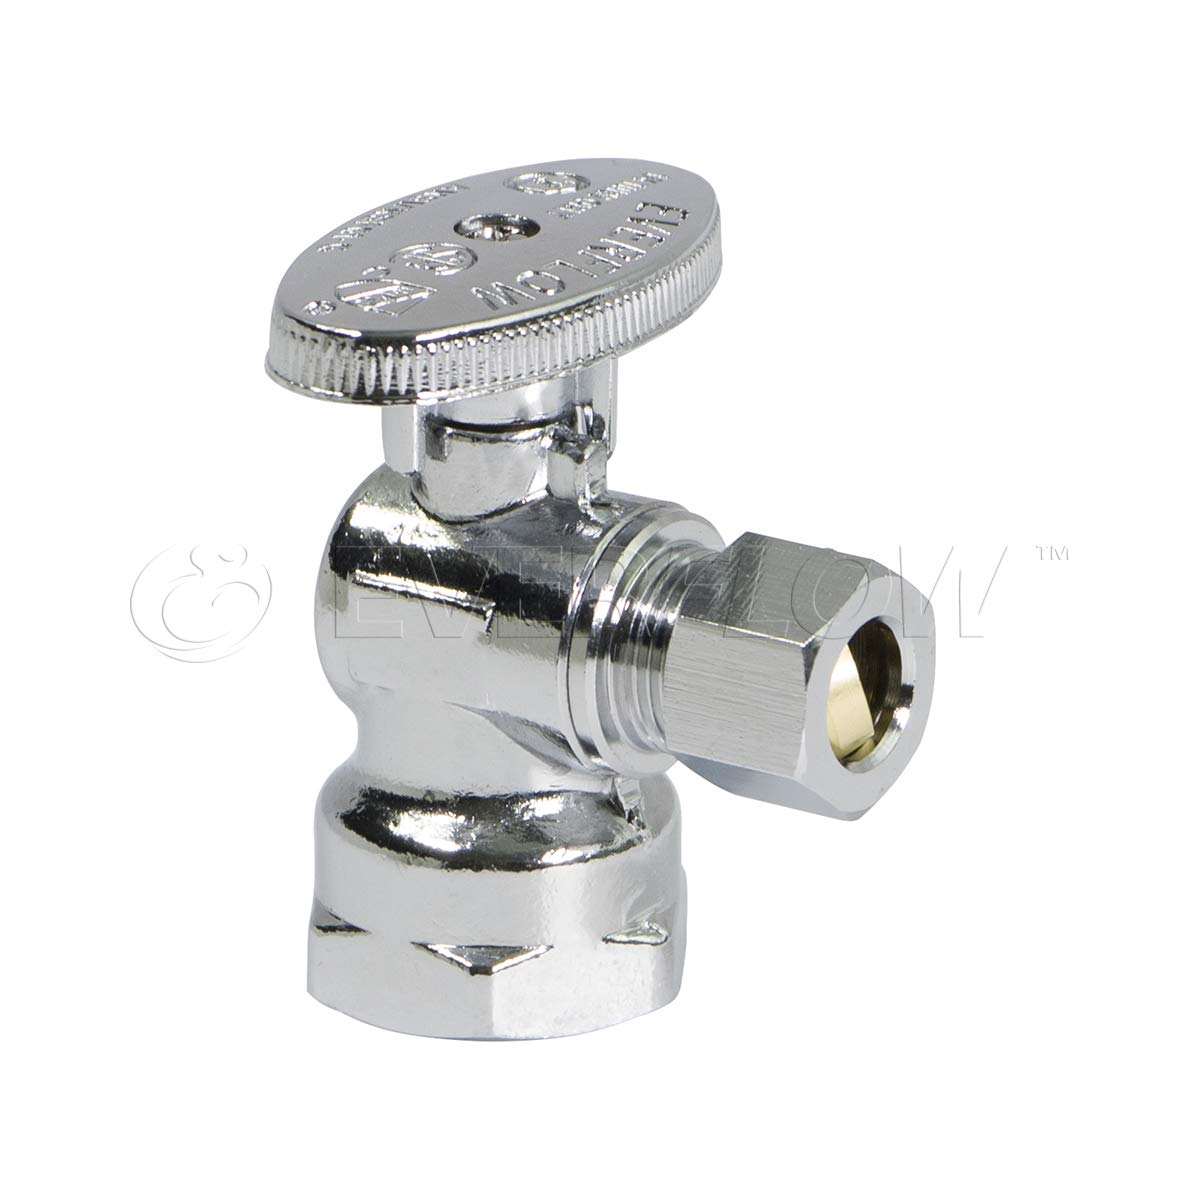 Everflow Supplies 81112PR-NL Premium Lead Free 1/2-Inch FIP x 3/8-Inch OD Compression Quarter Turn Angel Stop Valve